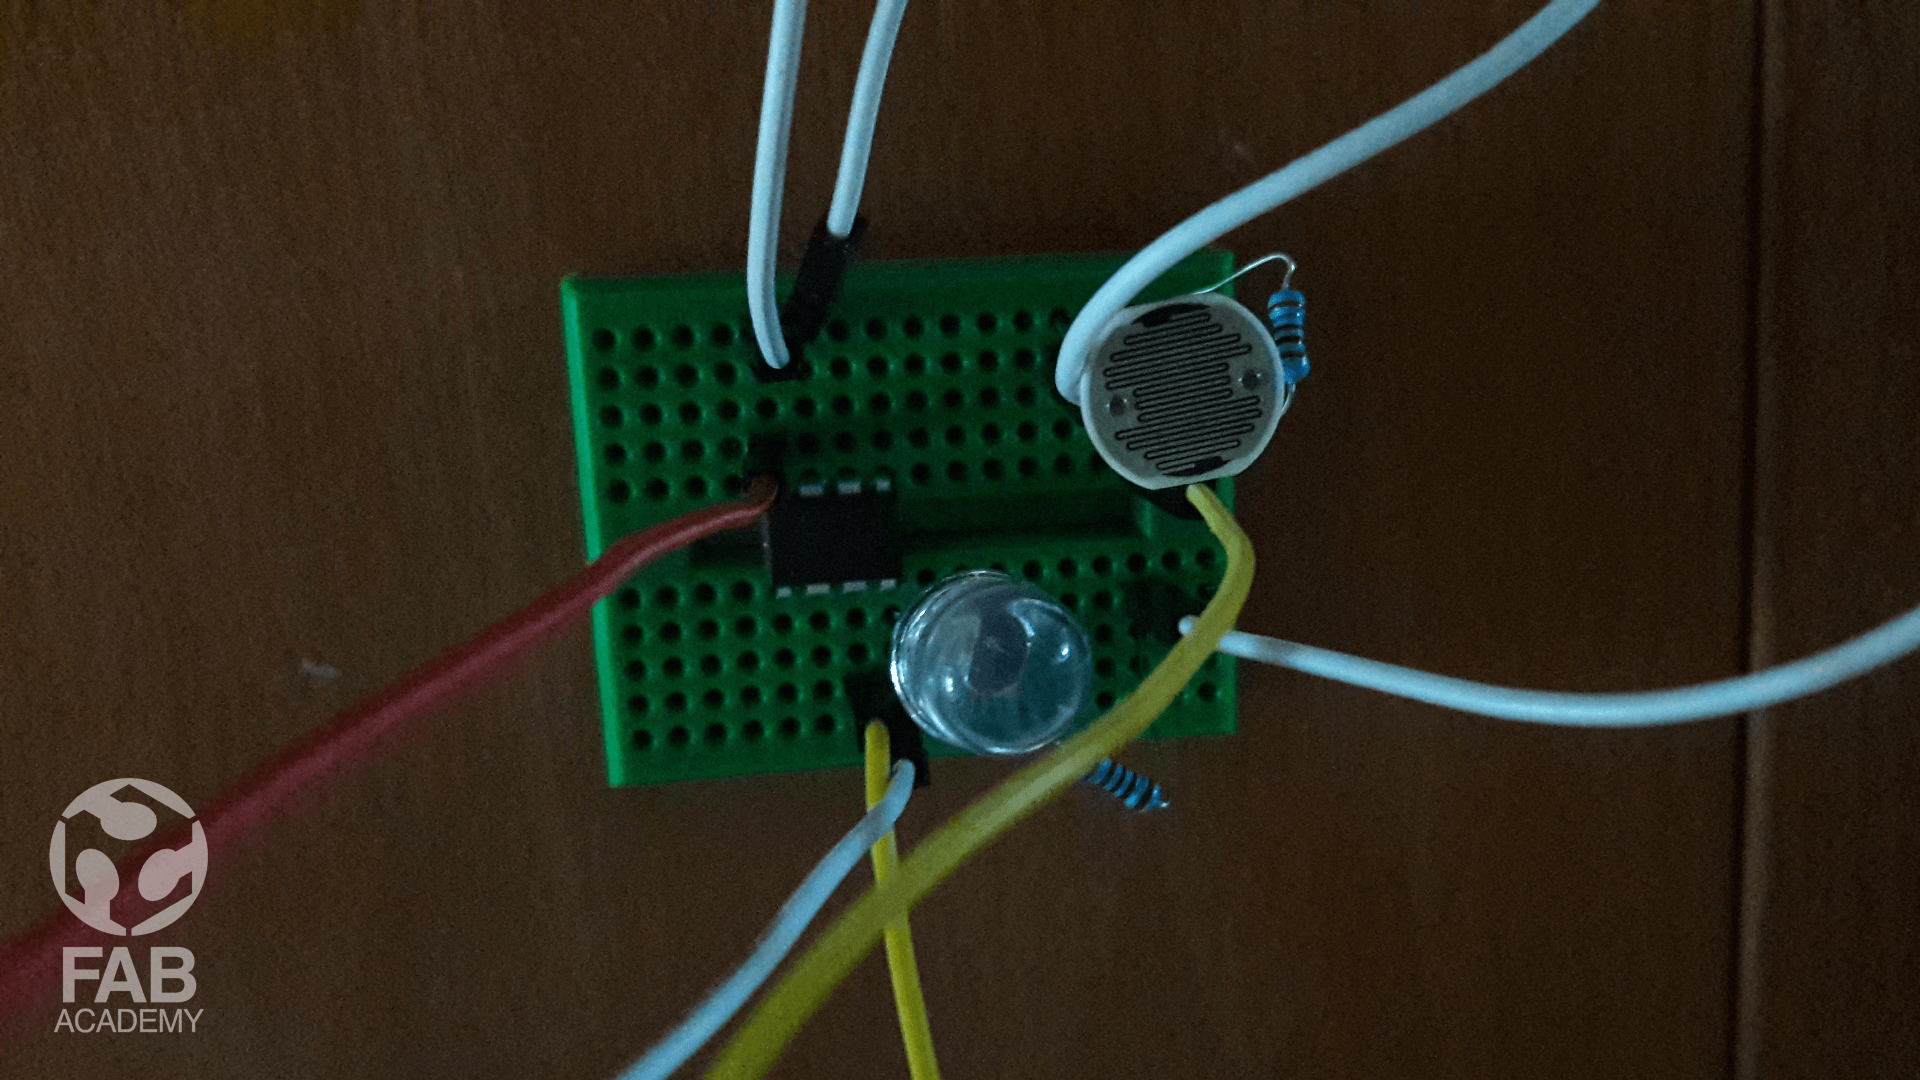 Output Devices W12 Flickering Leds Using Attiny 85 Arduino Youtube 01 Prototyping My Idea Attiny85 And Uno As A Programer